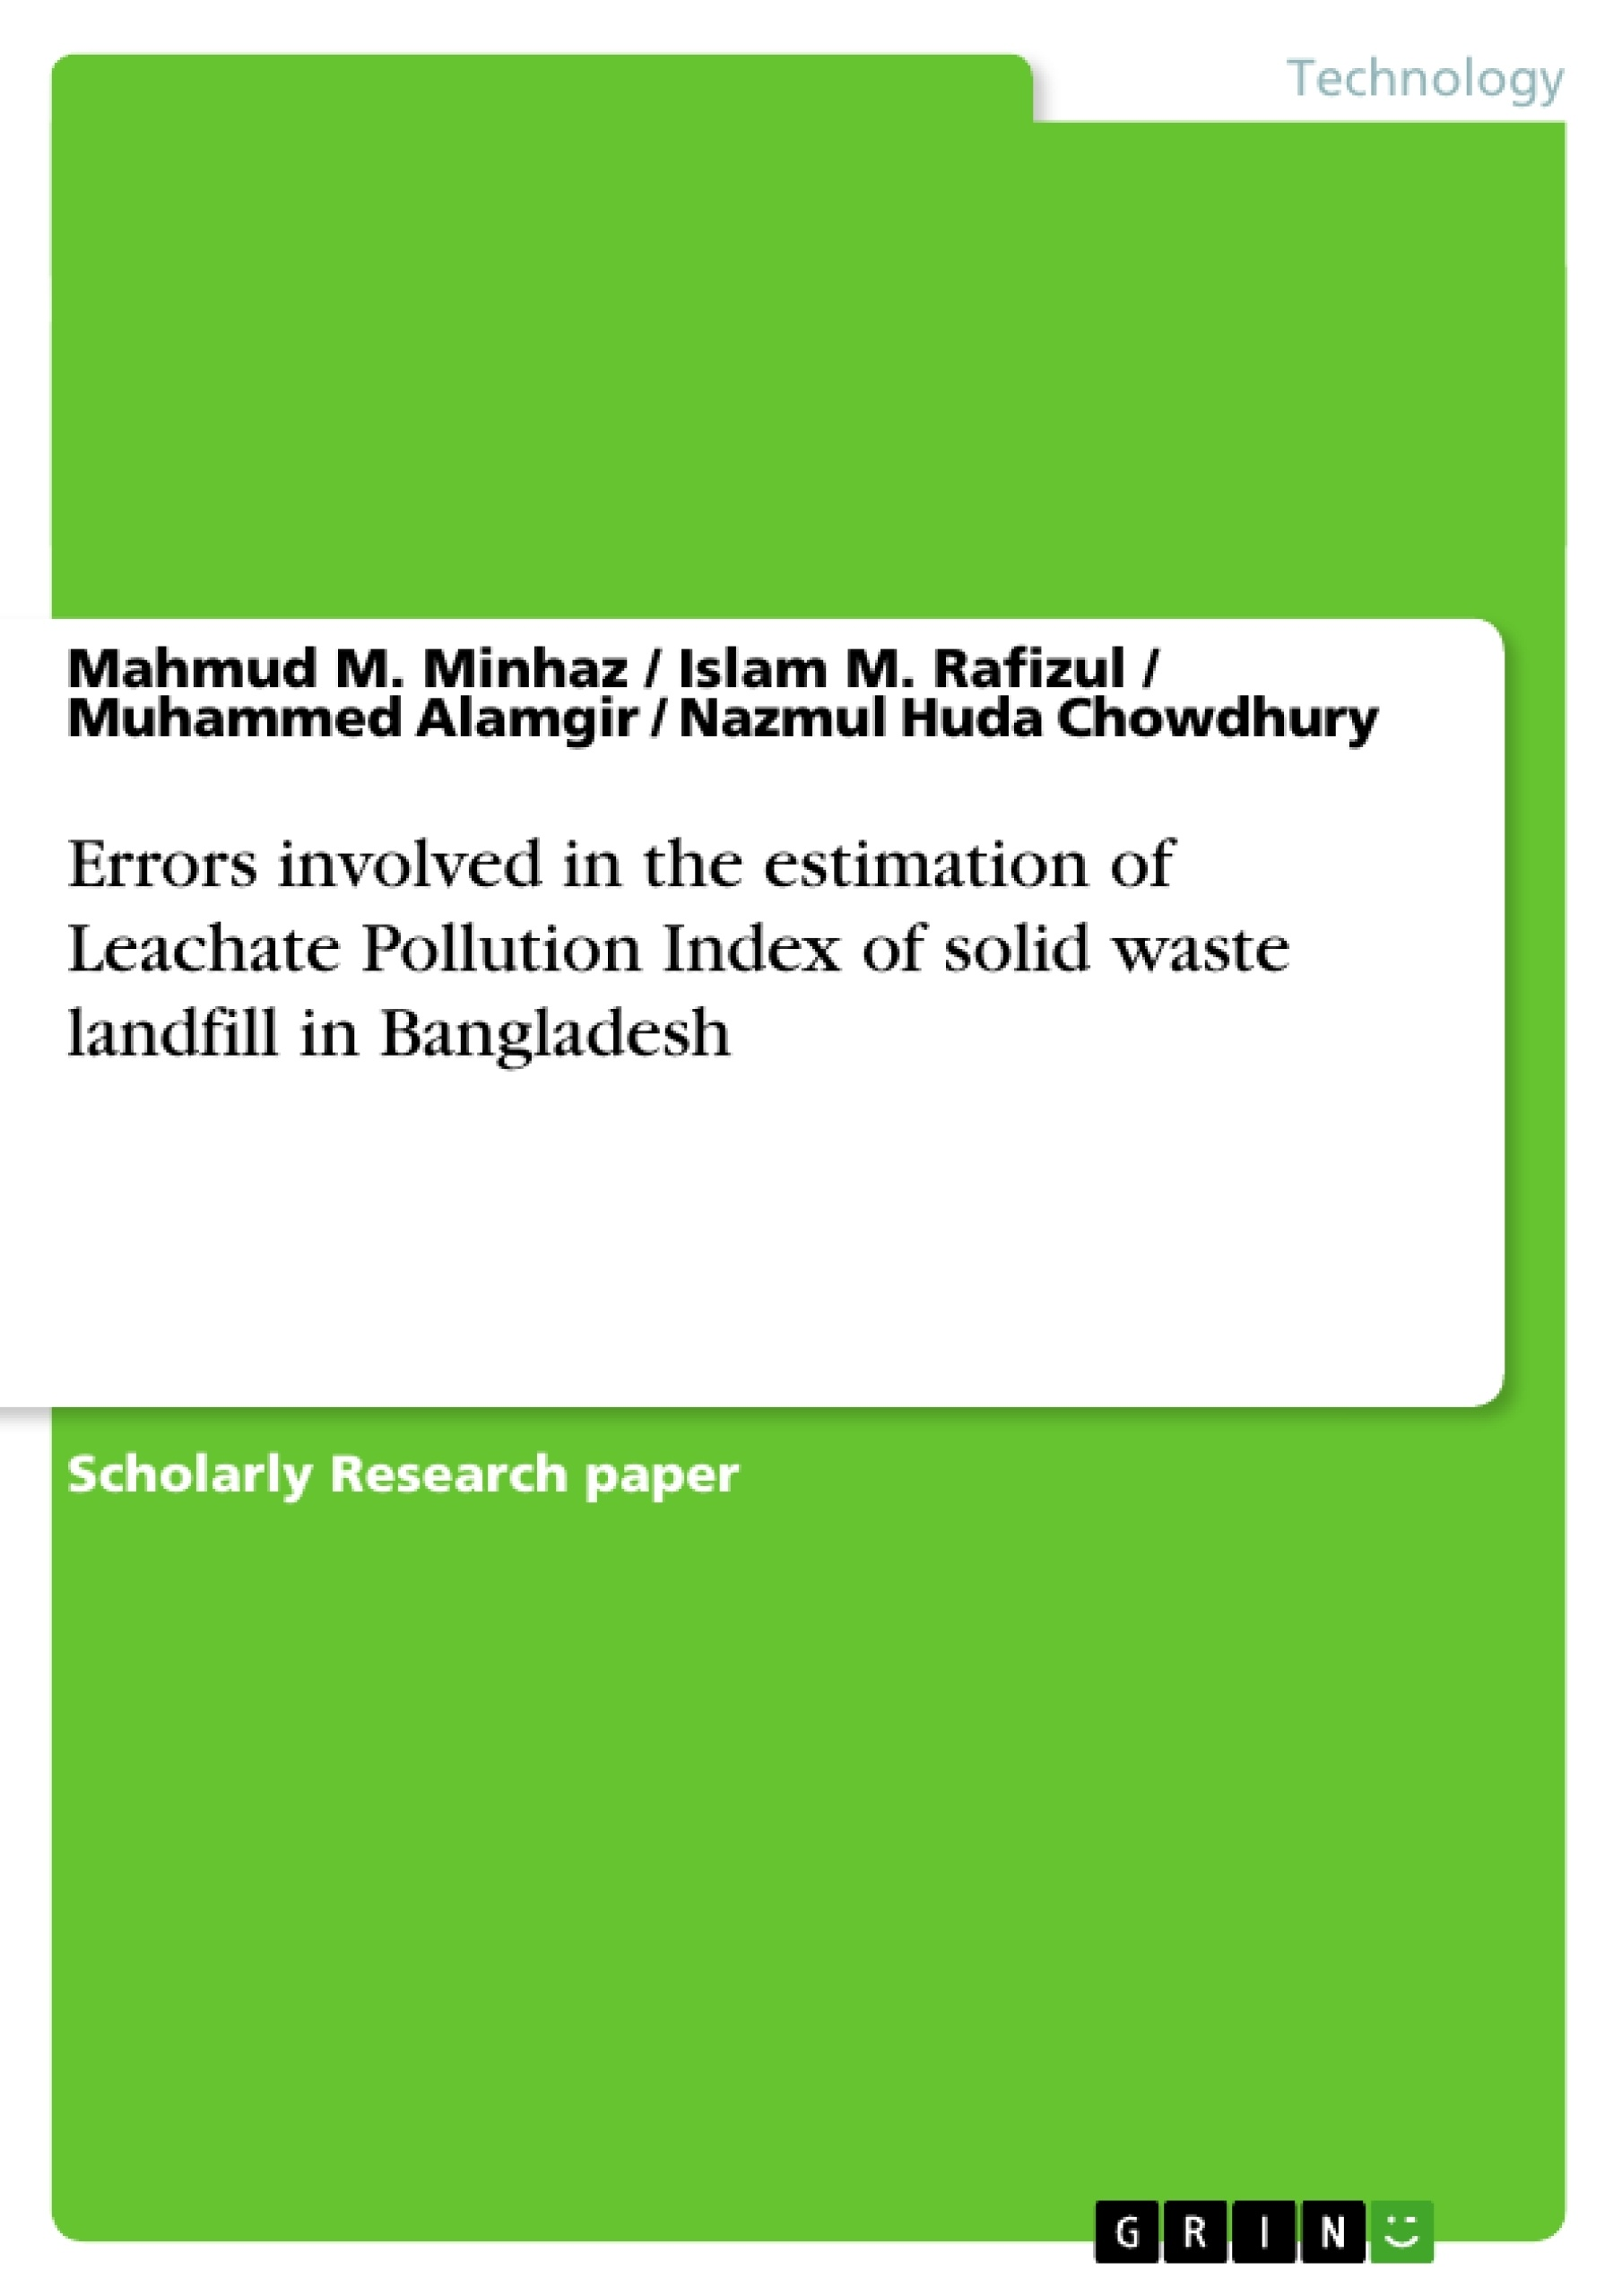 Title: Errors involved in the estimation of Leachate Pollution Index of solid waste landfill in Bangladesh